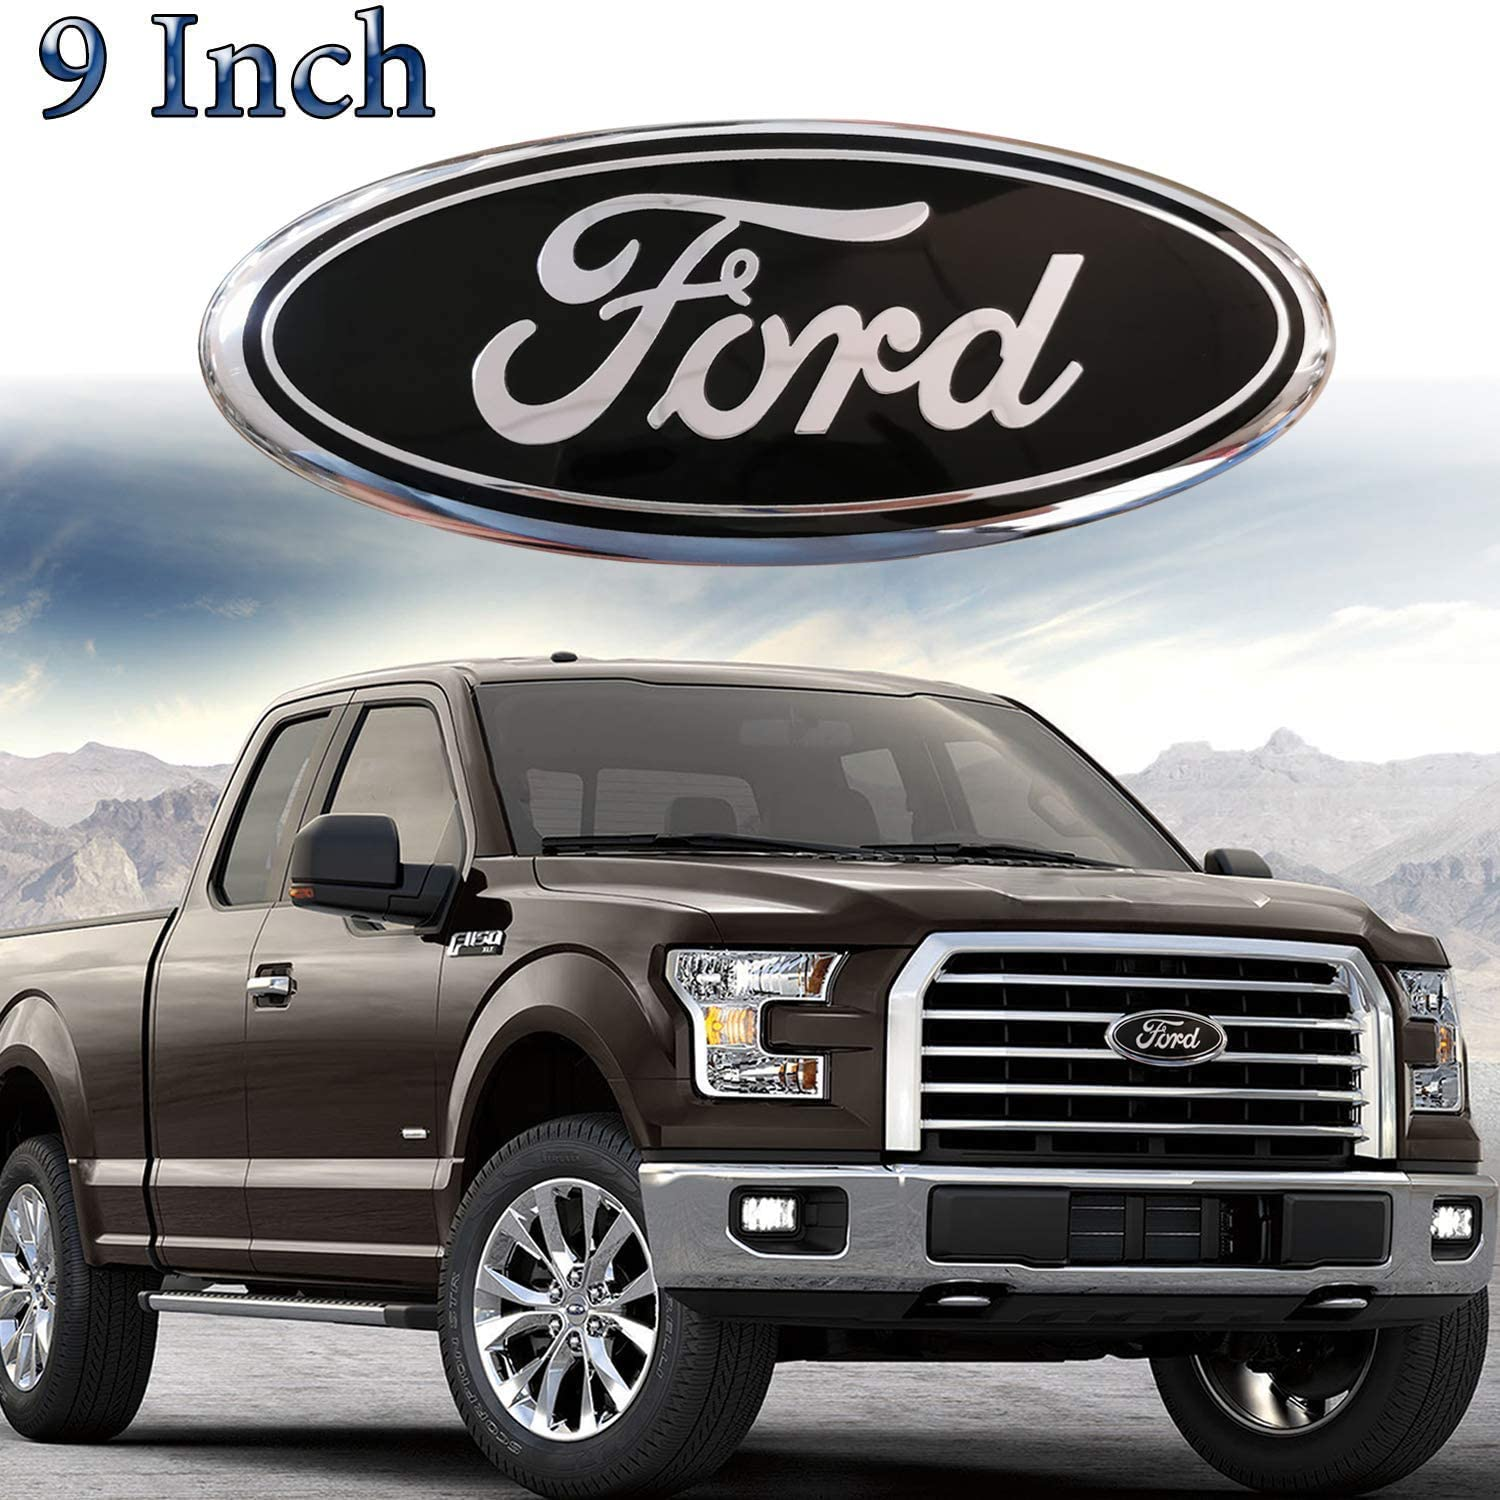 F150 Emblem Oval 9X3.5 Blue Ford Front Grille Tailgate Emblem Decal Badge Nameplate Fits for 04-14 F250 F350,11-14 Edge,11-16 Explorer,06-11 Ranger 9inch Ford Emblem Ford Decorative Accessories